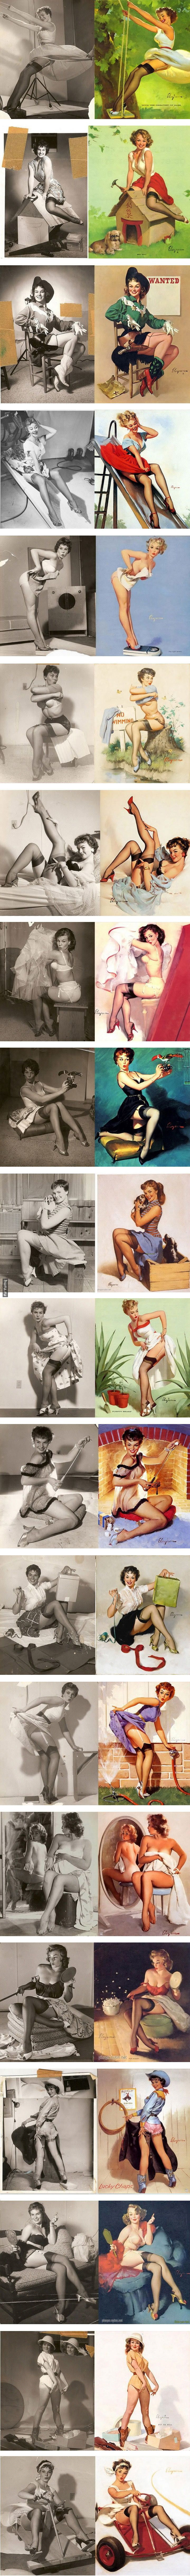 Coolest thing I've seen all day :) The real life models who posed for some of the most iconic and beautiful mid-century pinup illustrations.